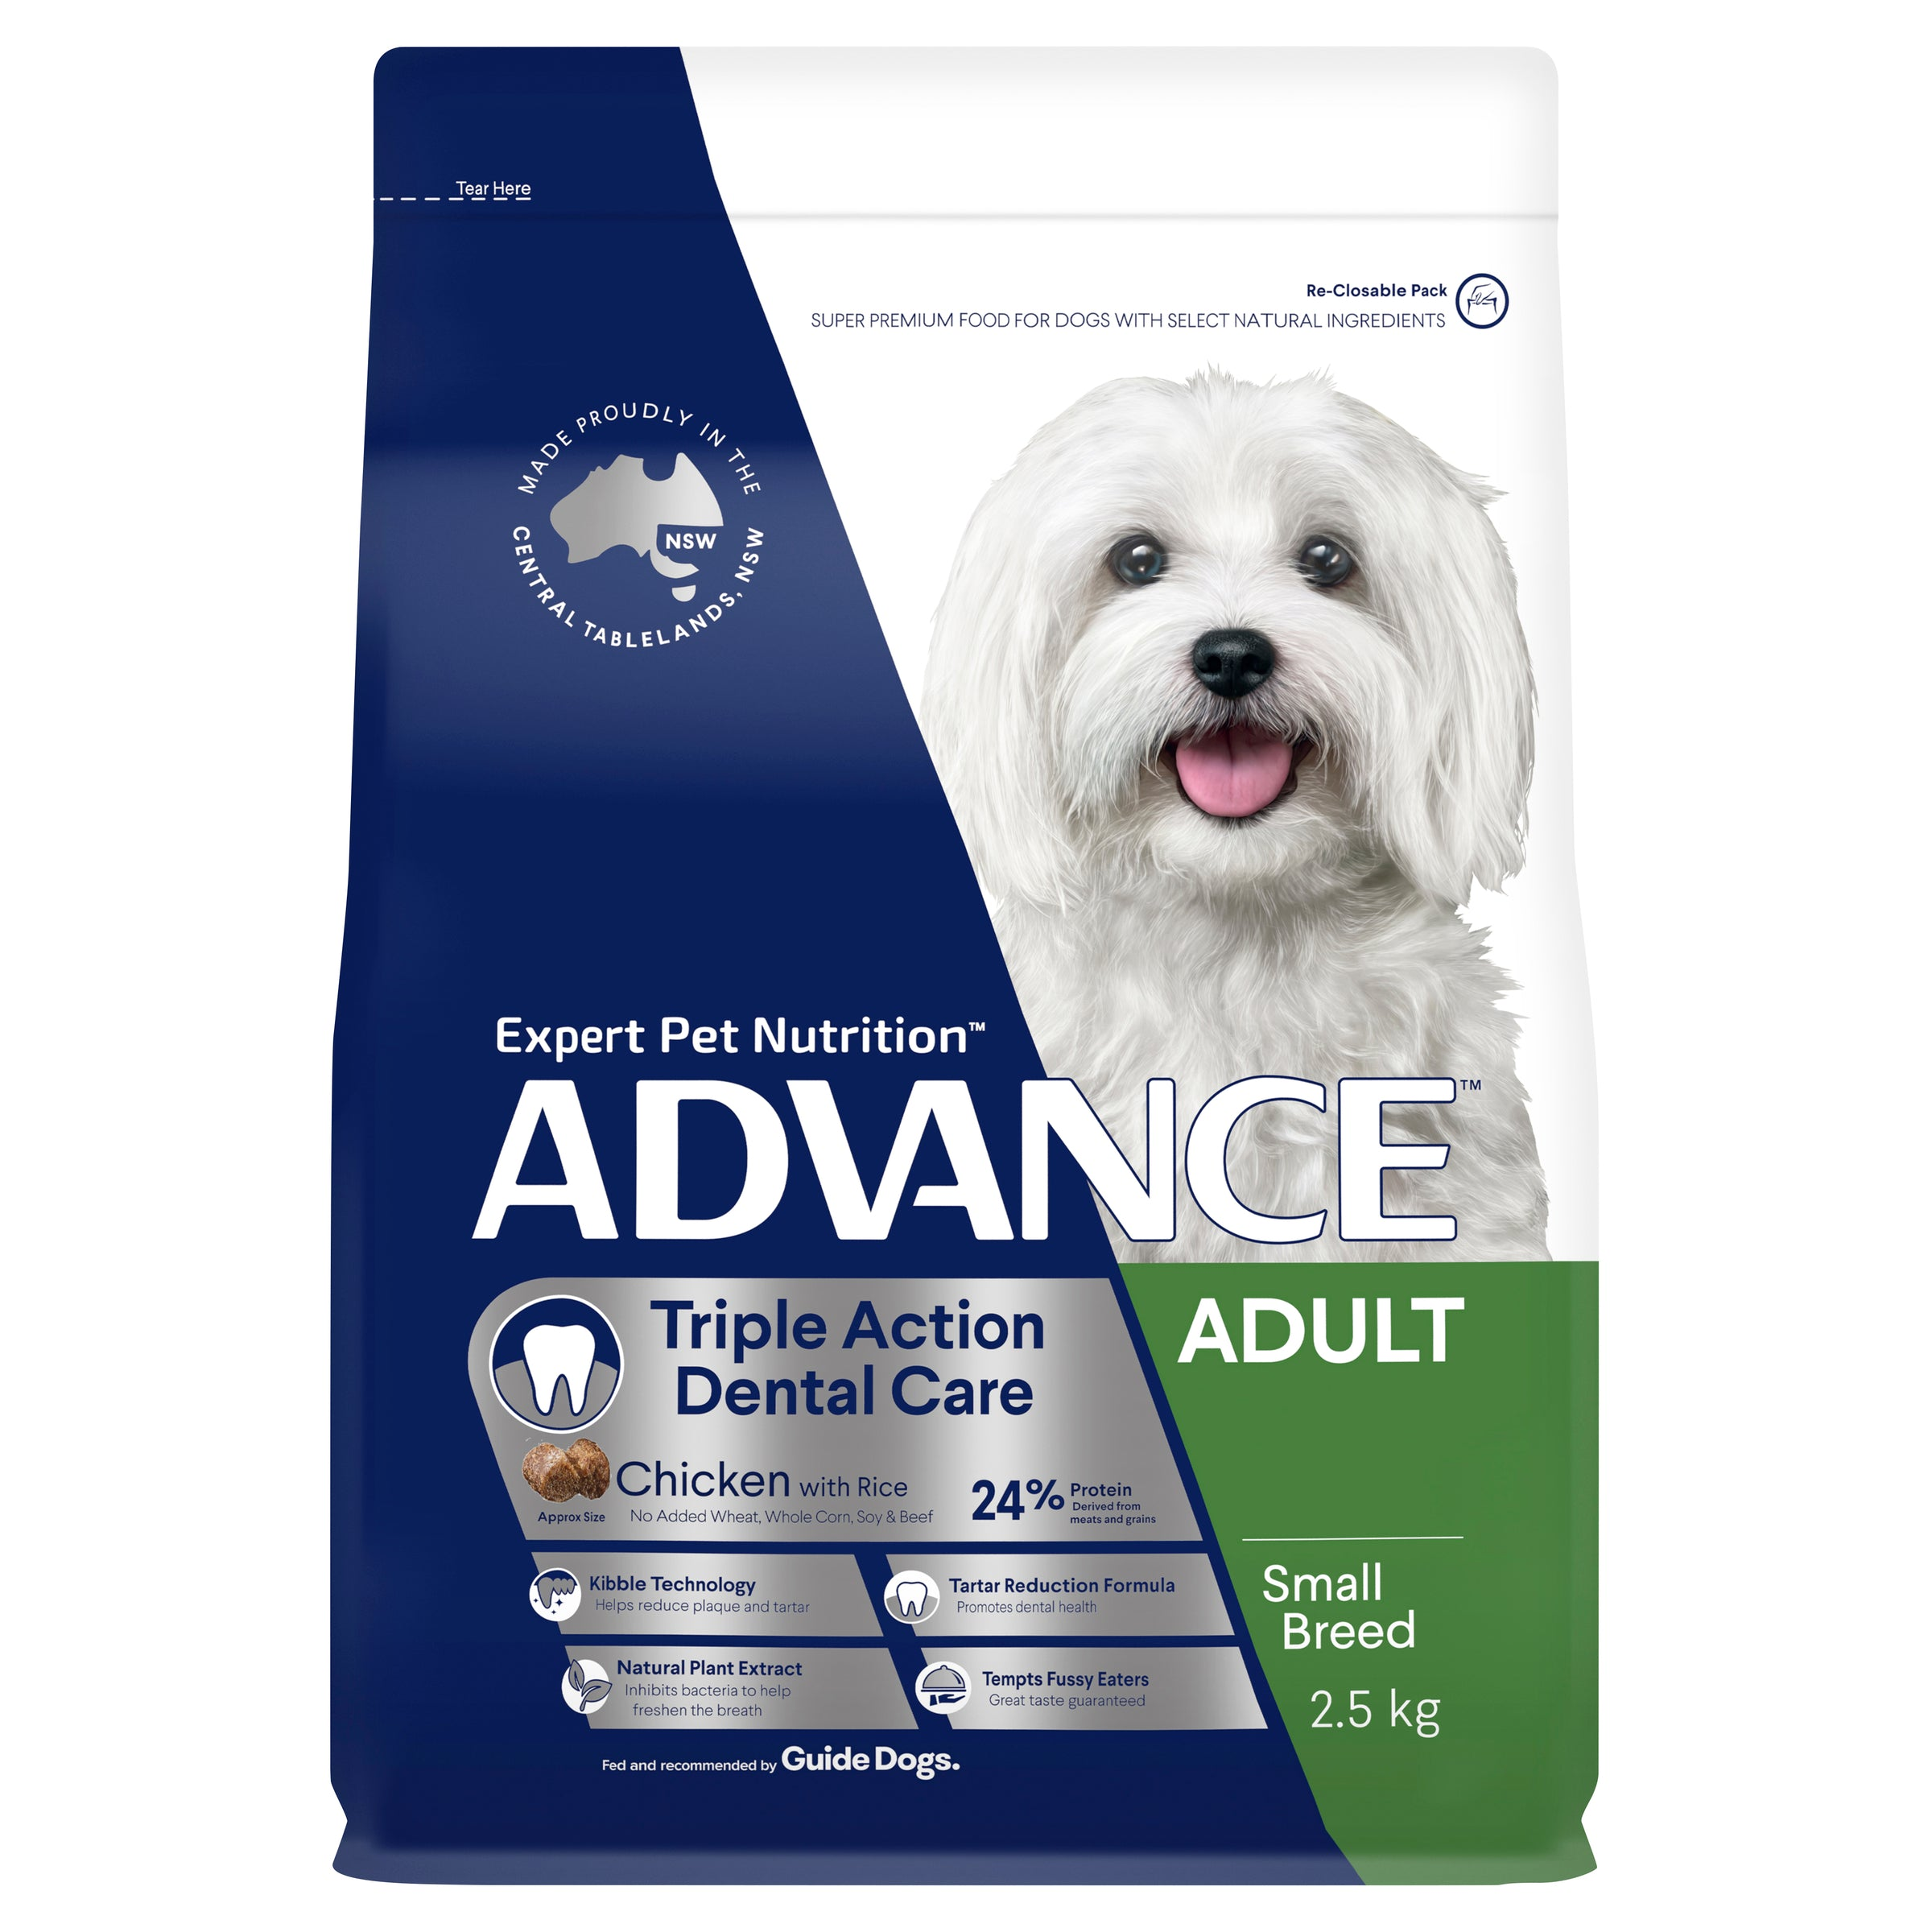 ADVANCE™ Dental Care Triple Action Adult Small Breed Chicken with Rice Dry Dog Food 2.5kg